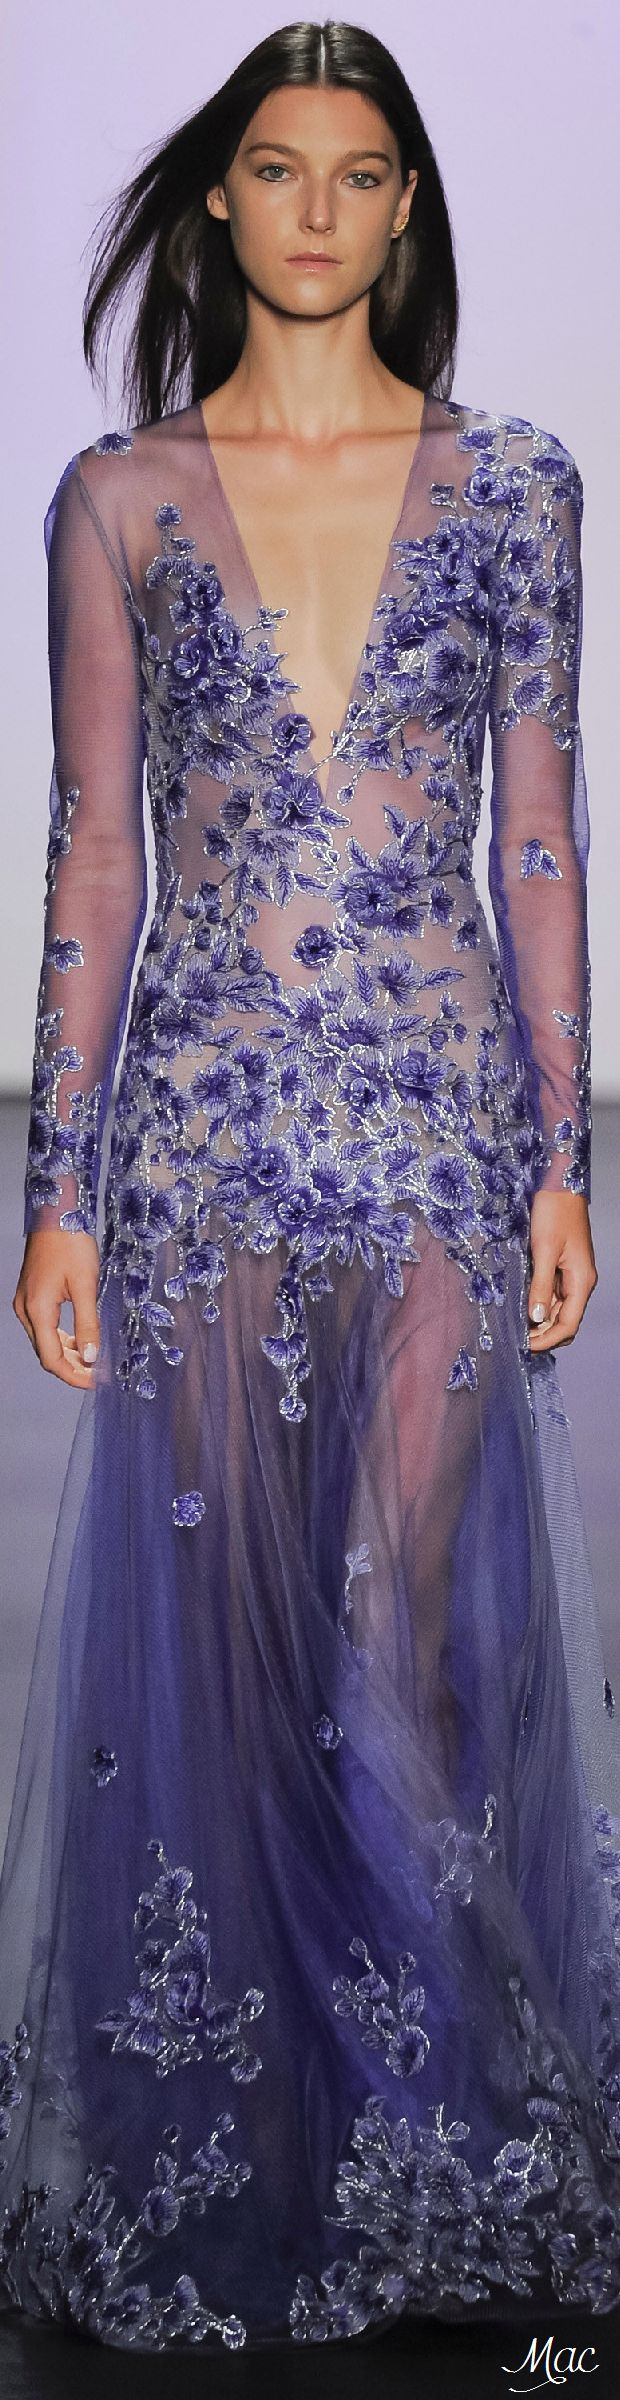 "Spring 2016 RTW Tadashi Shoji Thanks, Pinterest Pinners, for stopping by, viewing, re-pinning, & following my boards. Have a beautiful day! ❁❁❁ and""Feel free to share on Pinterest ^..^ #fashionupdates #fashionandclothingblog"